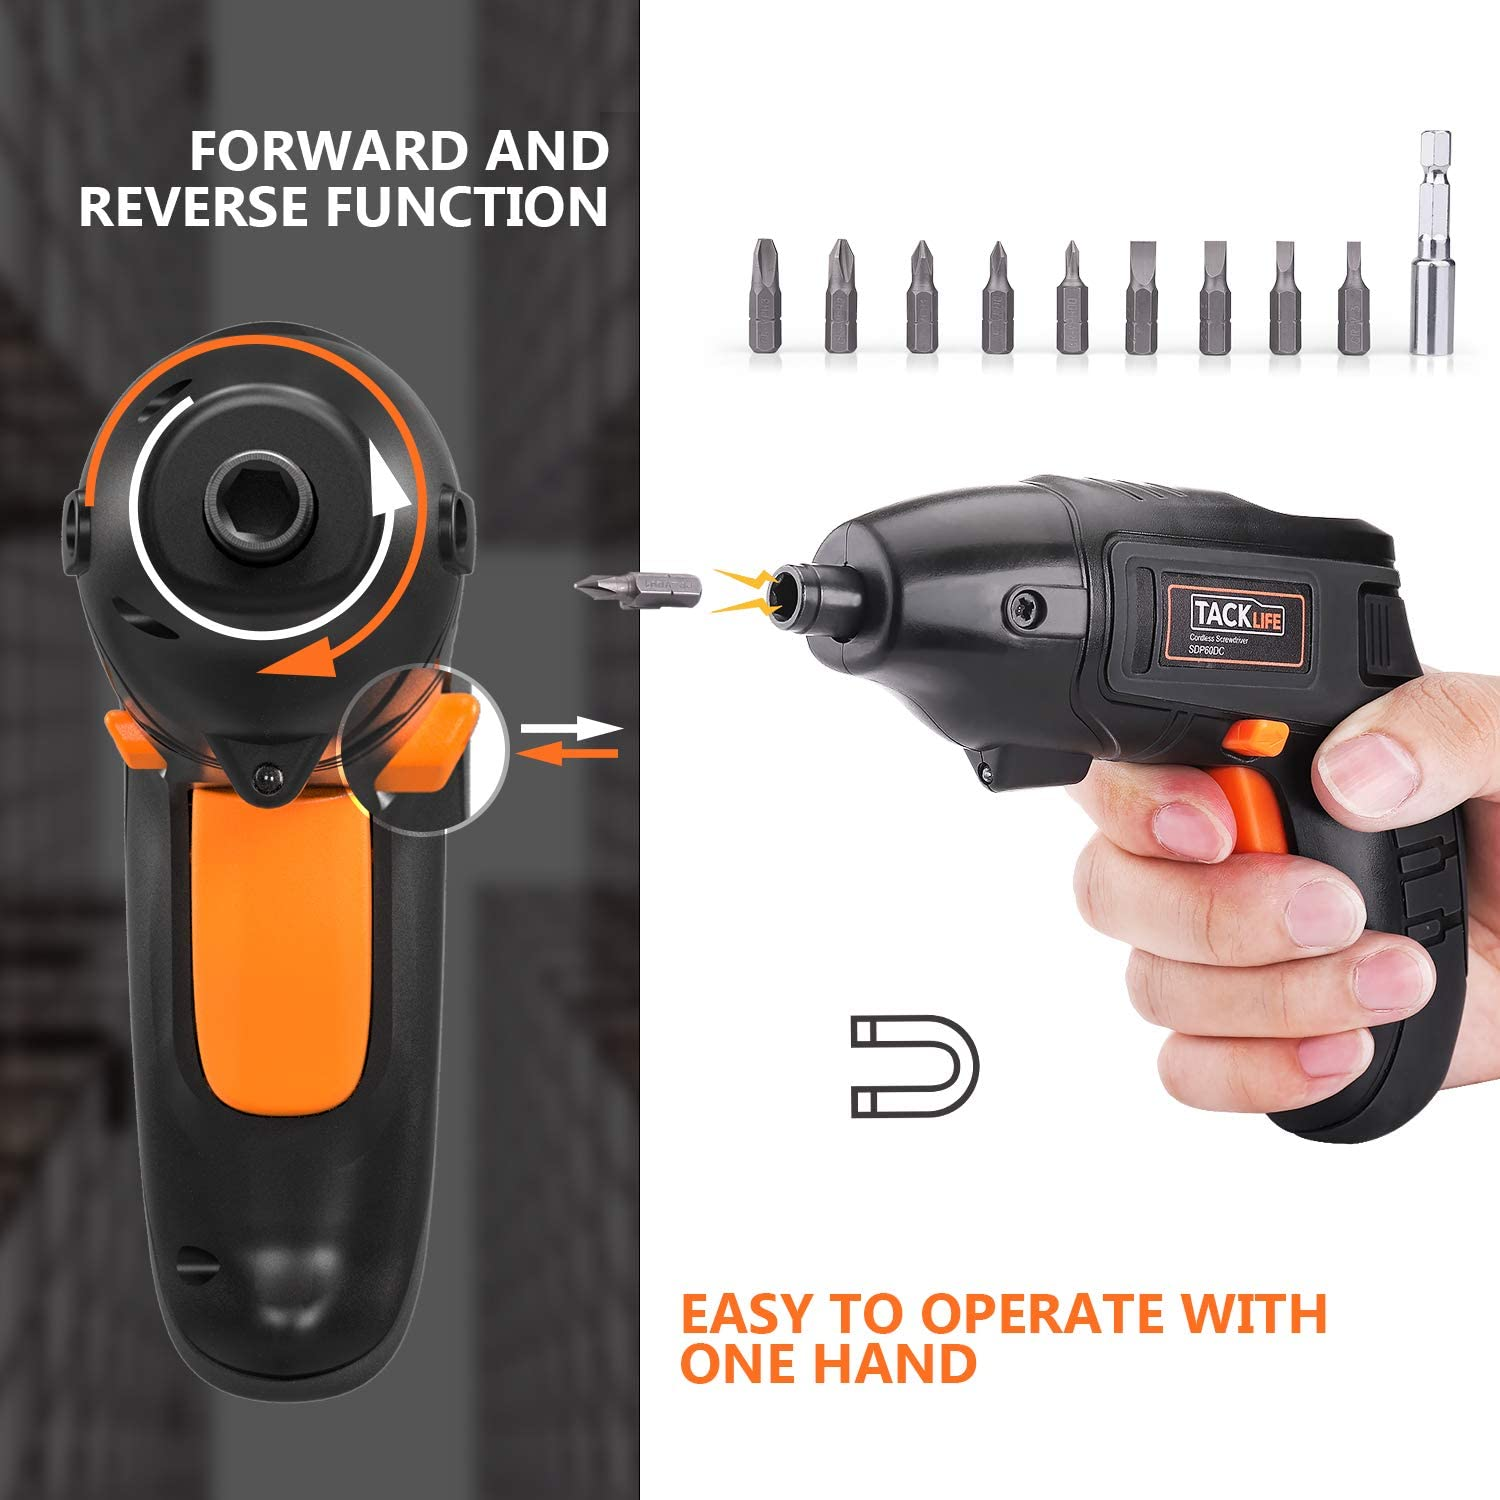 Electric Screwdriver Front LED Light-SDP60DC Tacklife Cordless Screwdriver Rechargeable 1500 mAh Li-on Battery with 10 Pcs Bonus Screw Bits for Home DIY and Fit for Ladies Newbies and Experienced